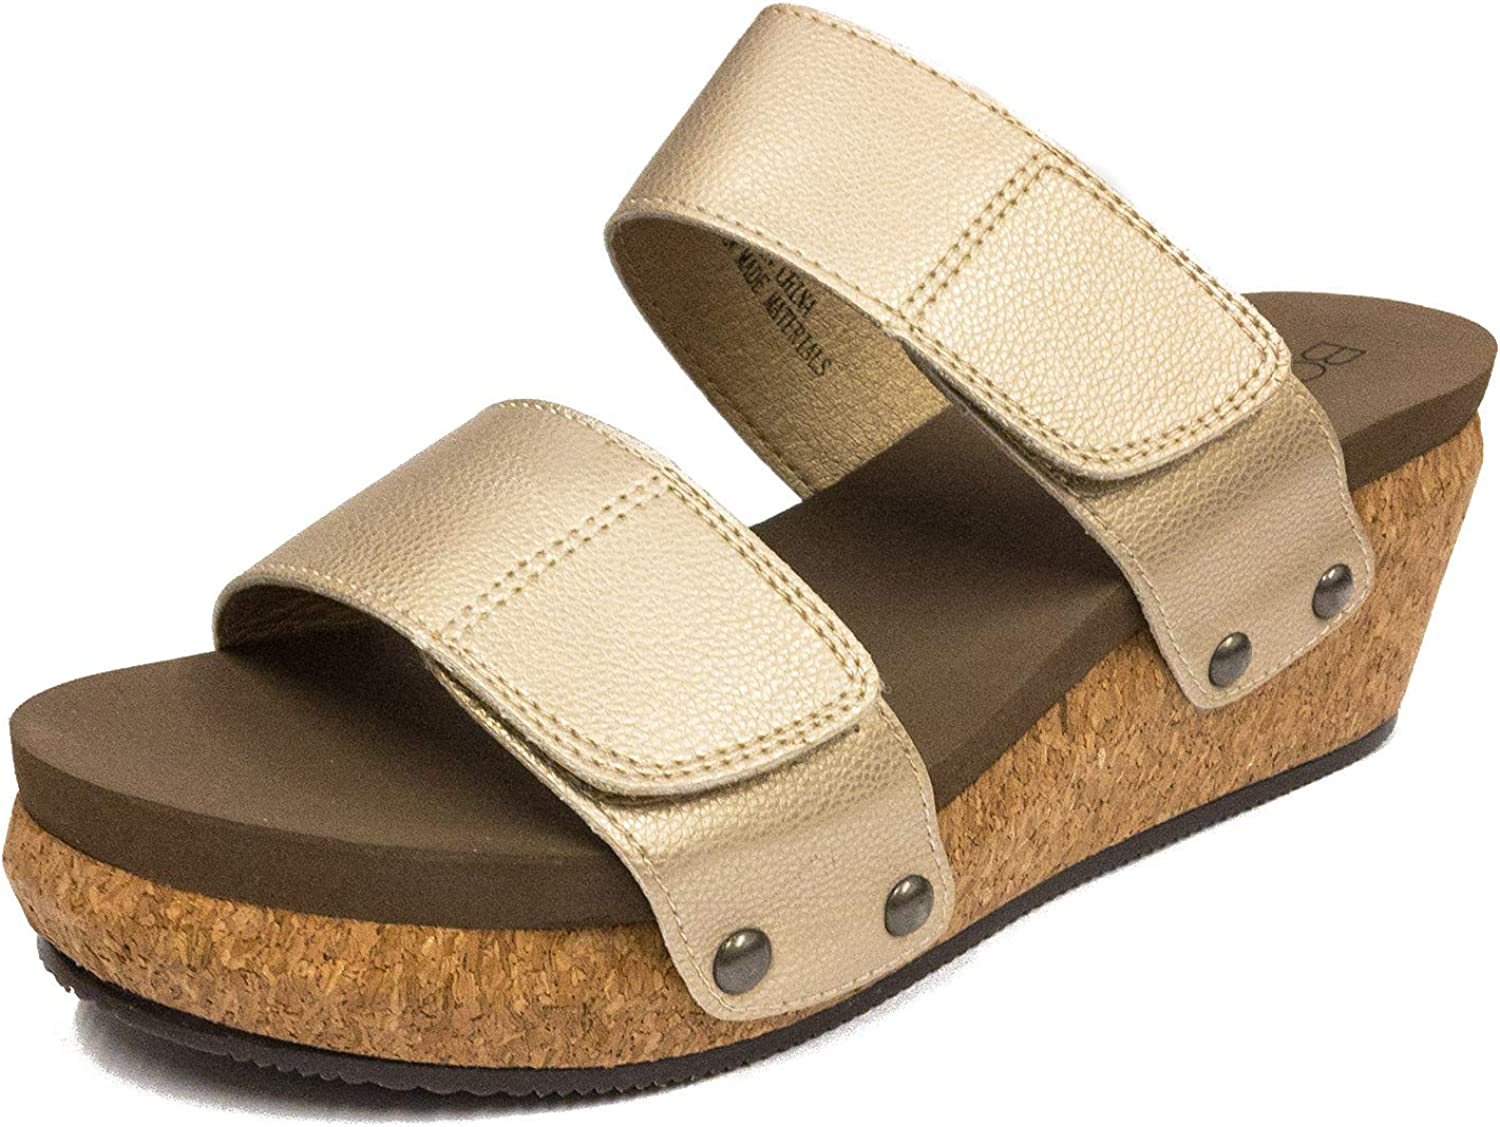 Corkys Women's Two-Way All stores are sold Sandals Limited time for free shipping Wedge